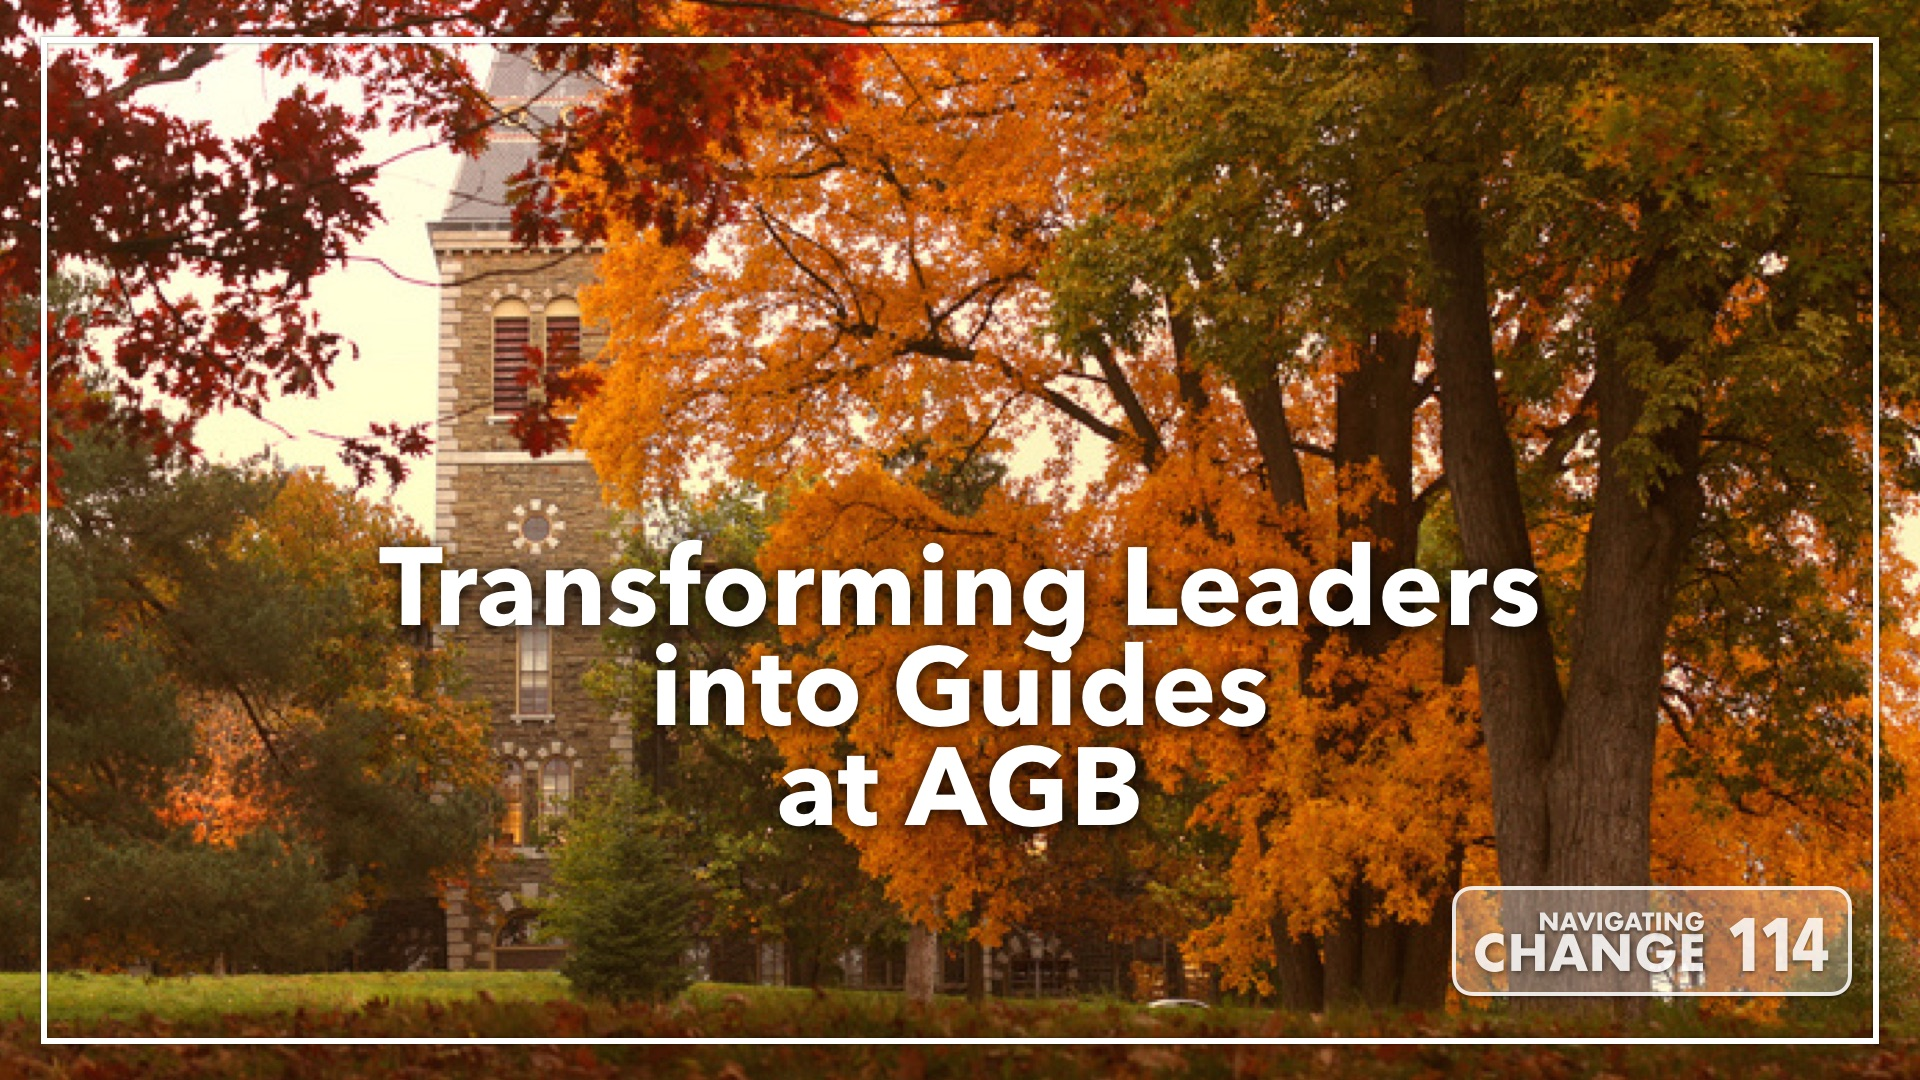 Listen to Transforming Leaders into Guides at AGB on Navigating Change The Education Podcast